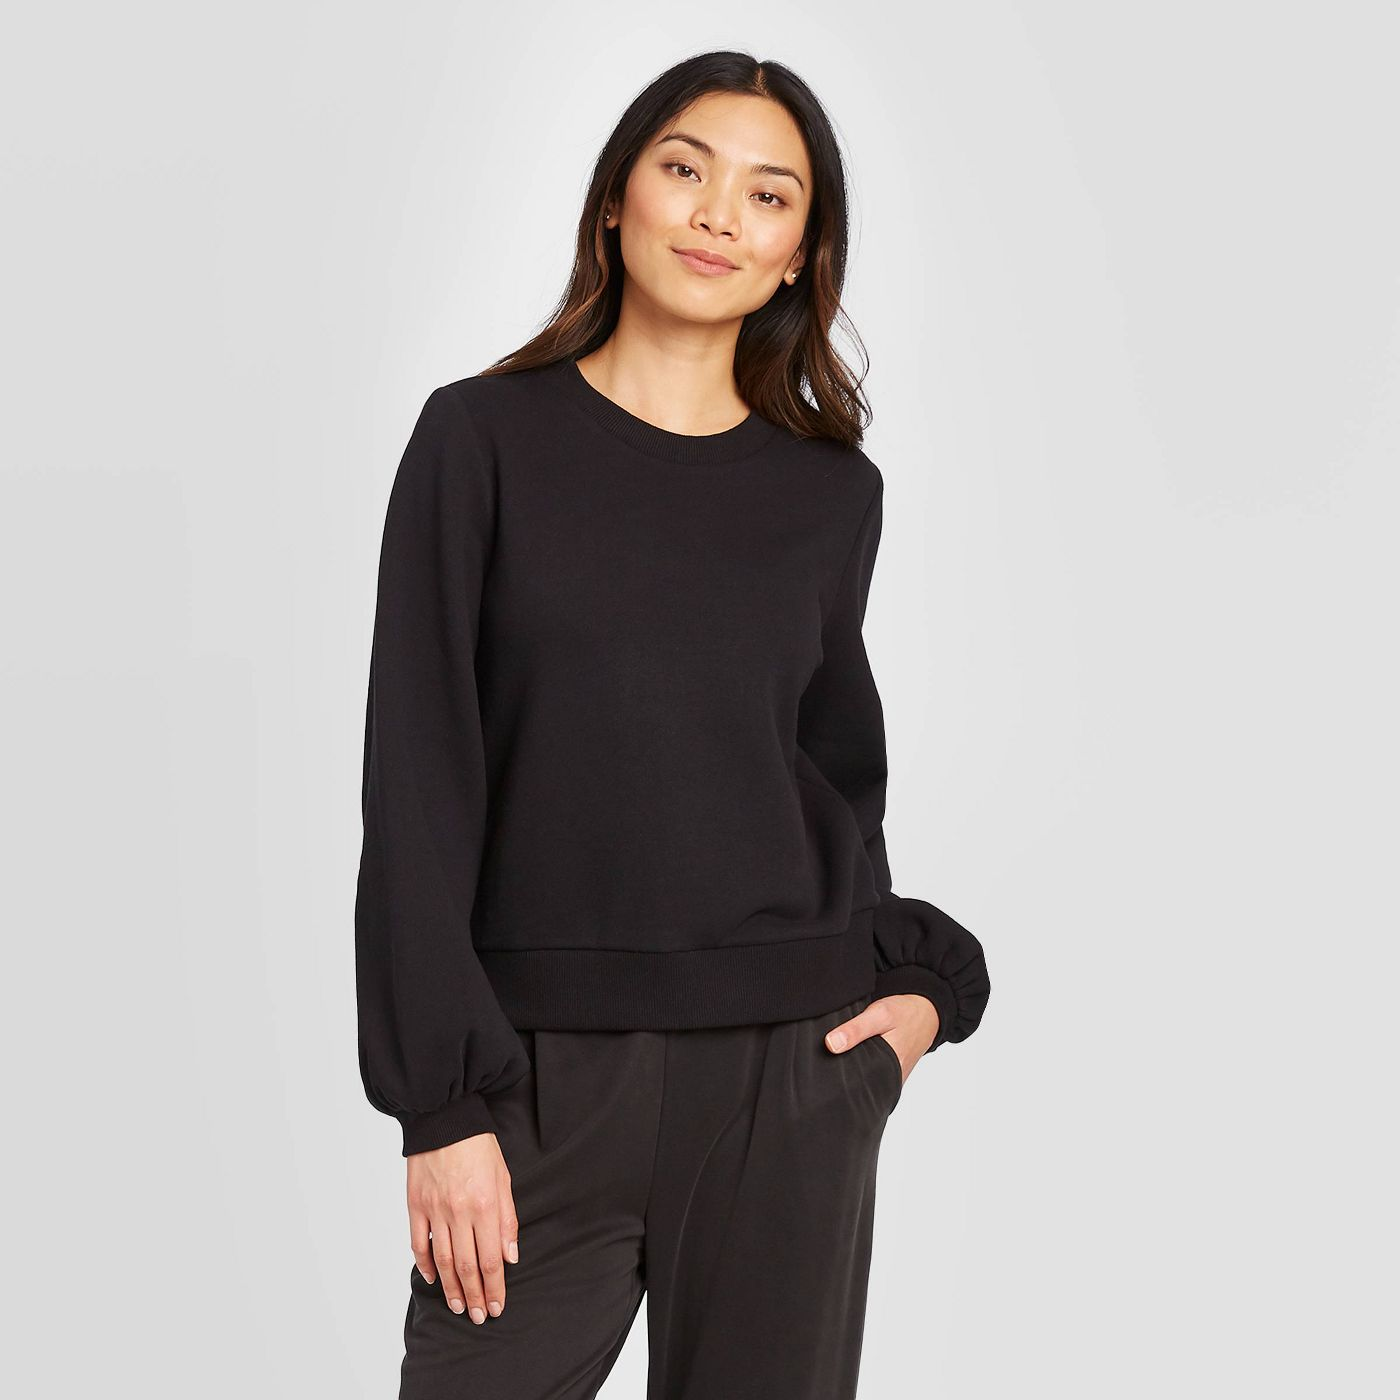 A New Day Crewneck Pullover Sweatshirt Top, 12 Adorably Chic Sweatshirts You'll Want In Your Closet